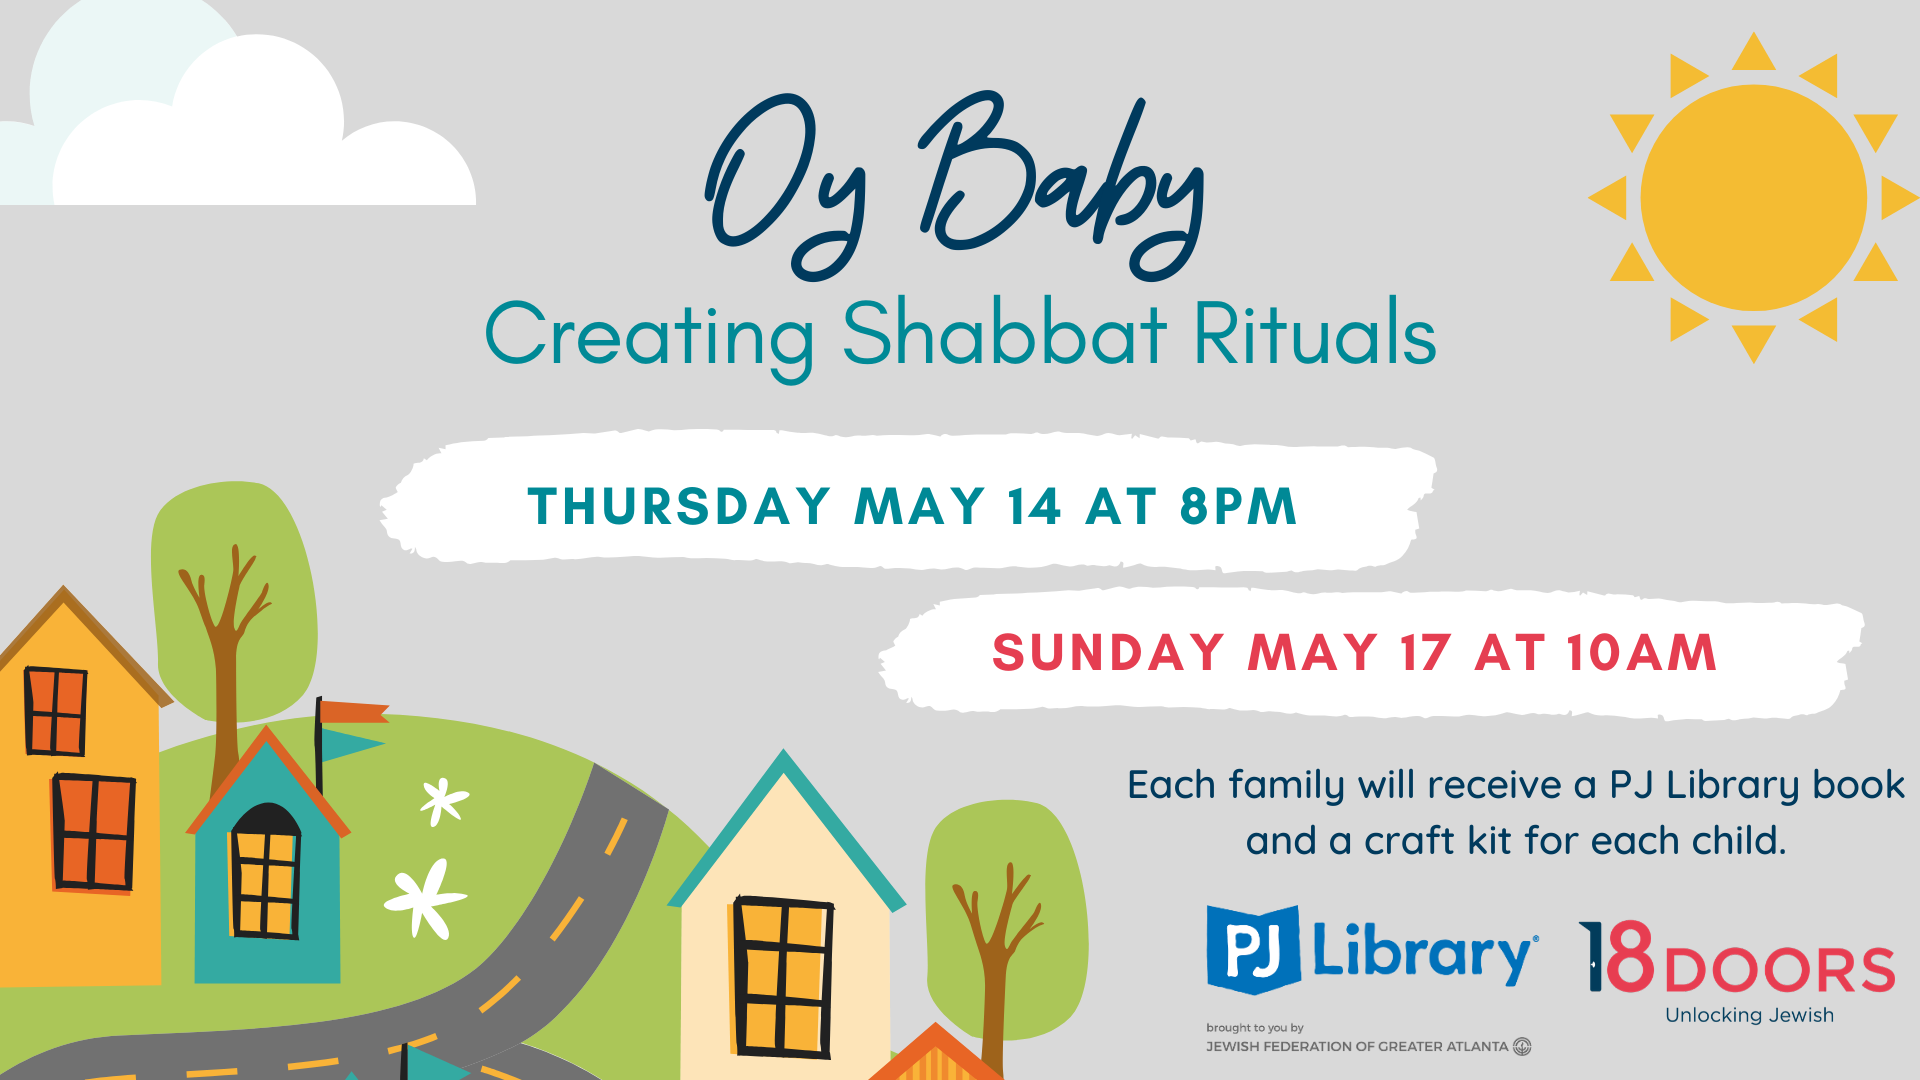 Facebook Event Cover Photo Oy Baby Creating Shabbat Rituals